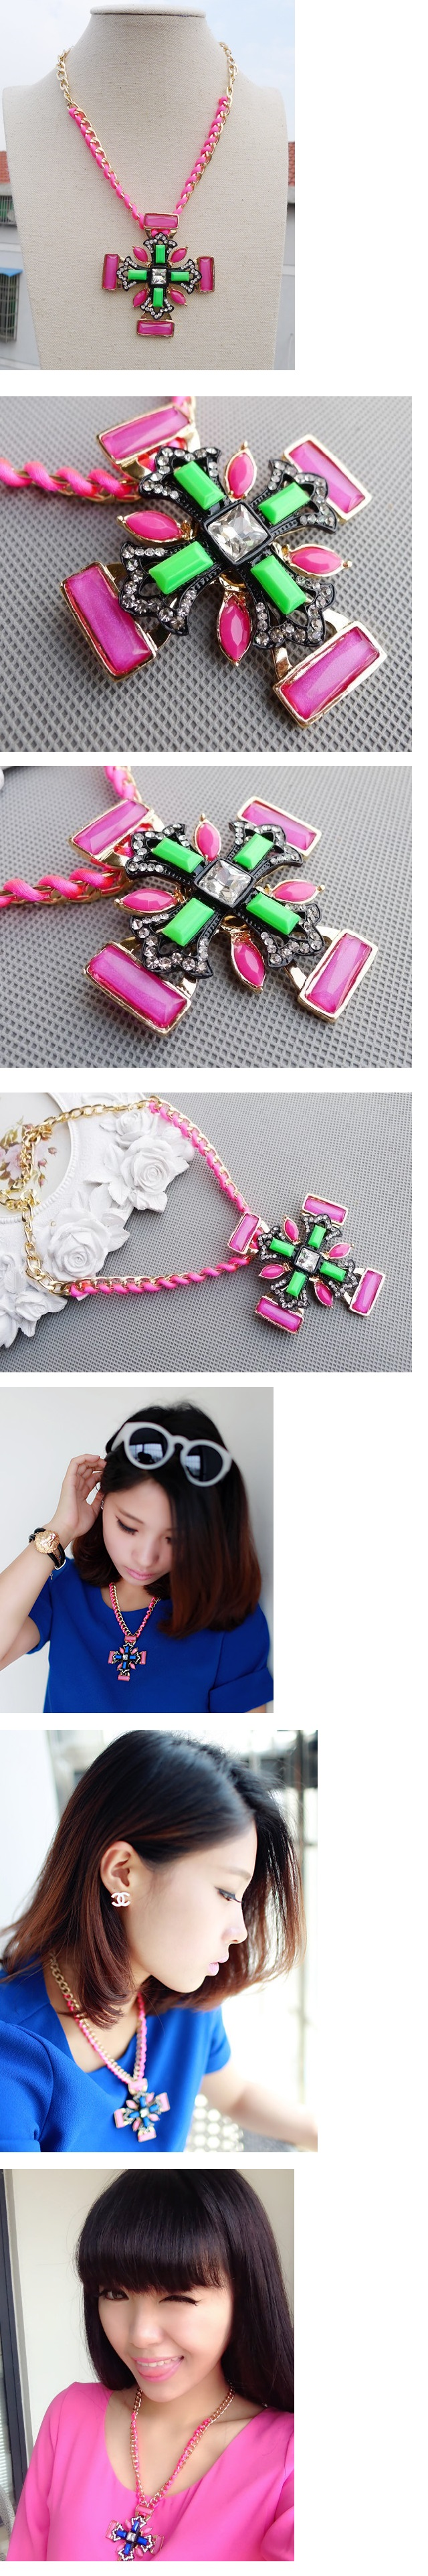 Fluorescent Pink Cross Necklace Clavicle Chain